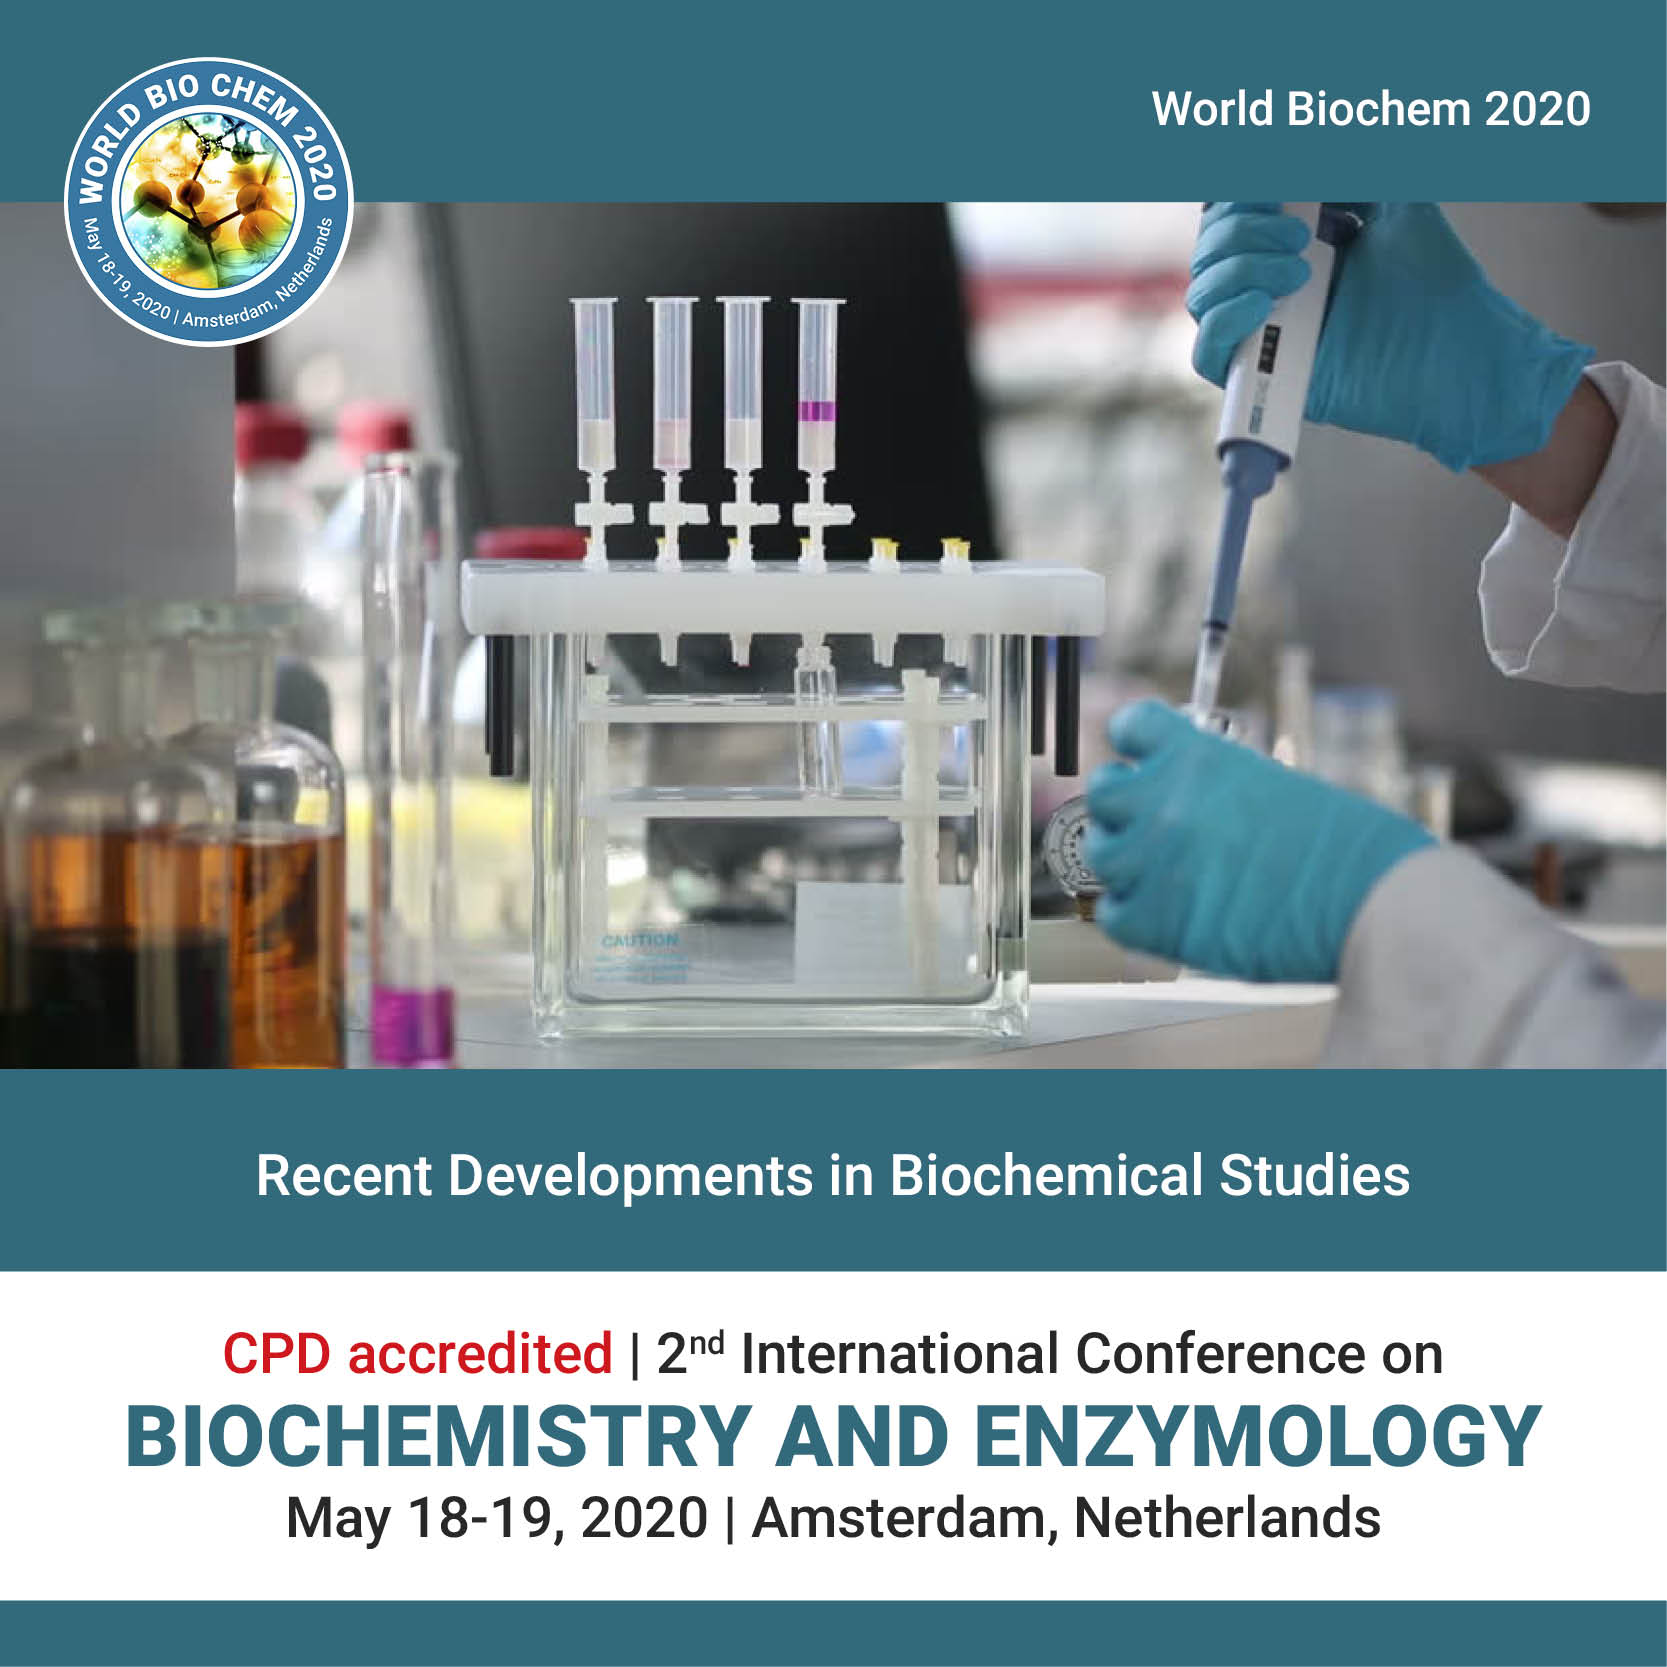 RECENT DEVELOPMENTS IN BIOCHEMICAL STUDIES Photo